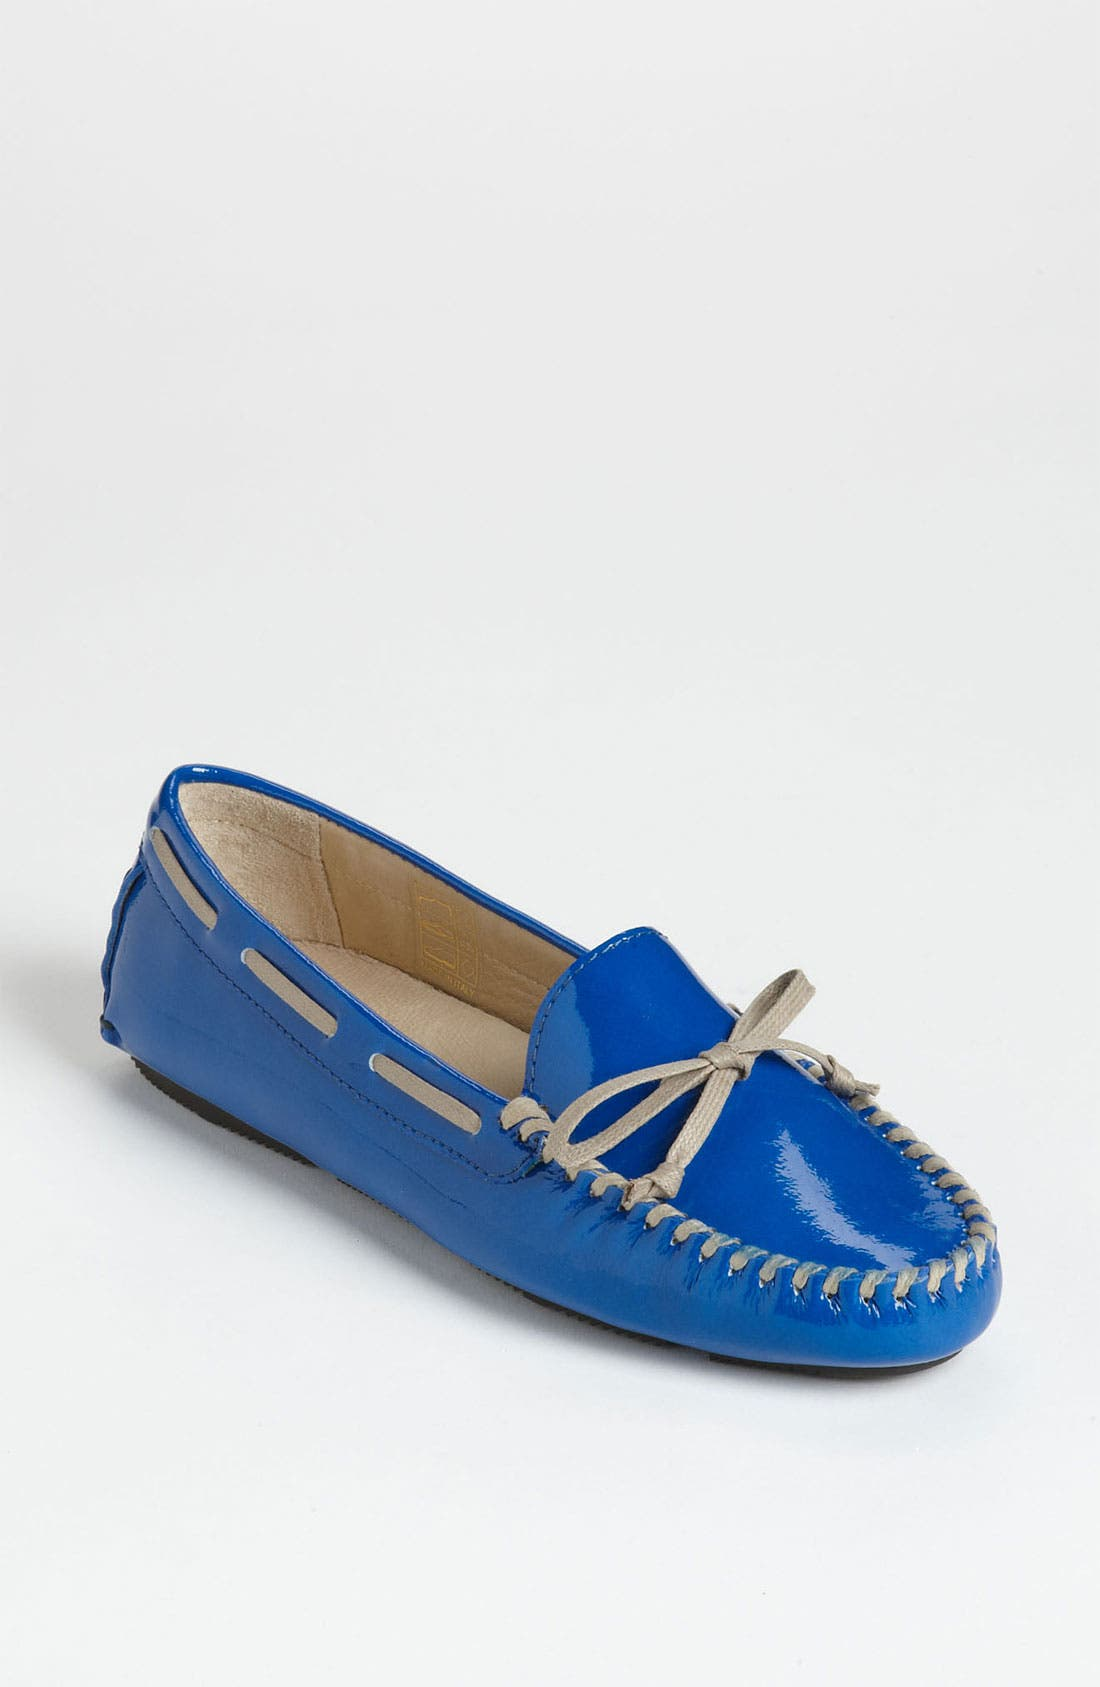 Alternate Image 1 Selected - Vera Wang Footwear 'Dorian' Loafer (Online Exclusive)